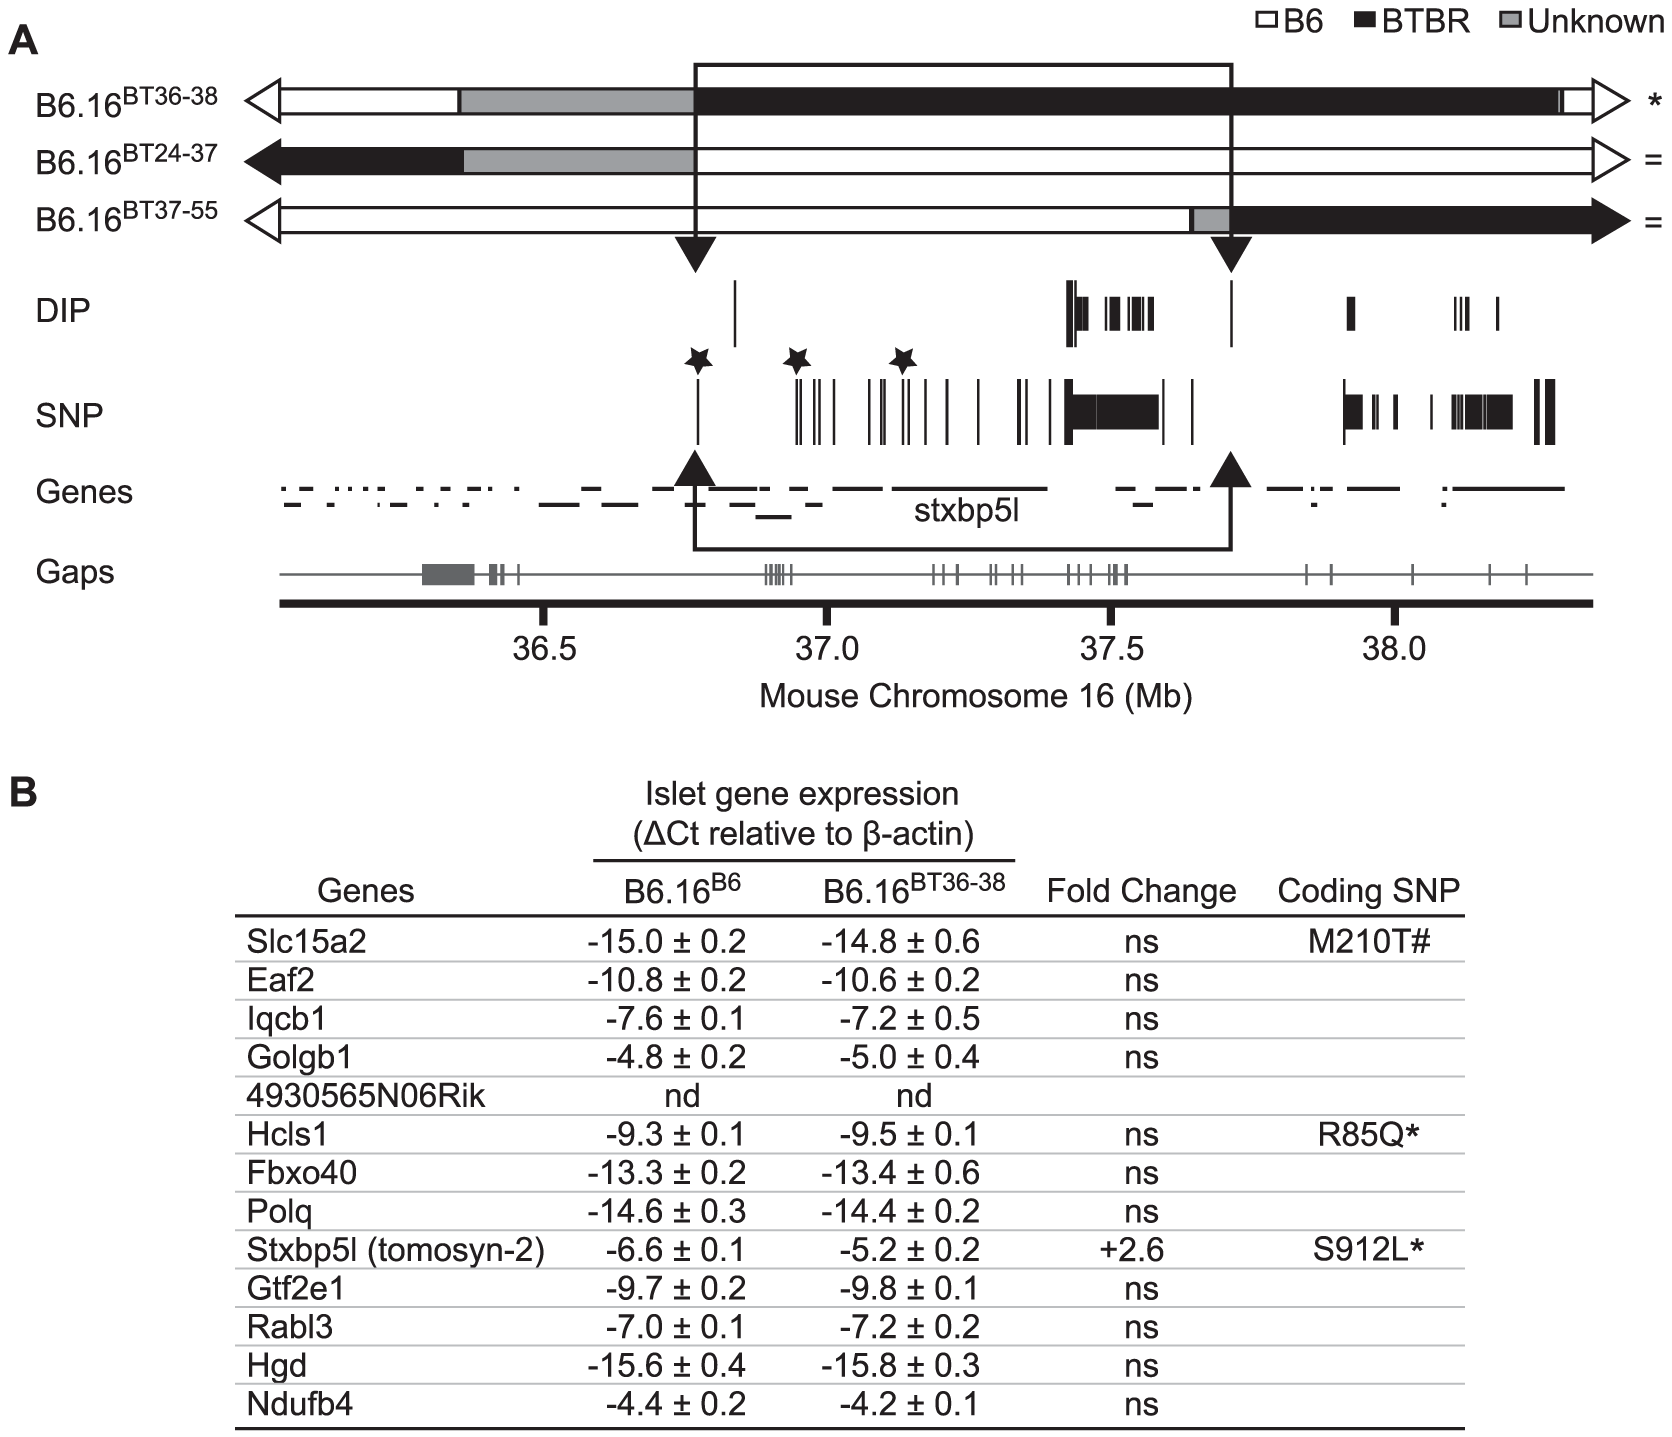 Insulin secretion defective region narrowed to 0.94 Mb on mouse chromosome 16 containing 13 genes.